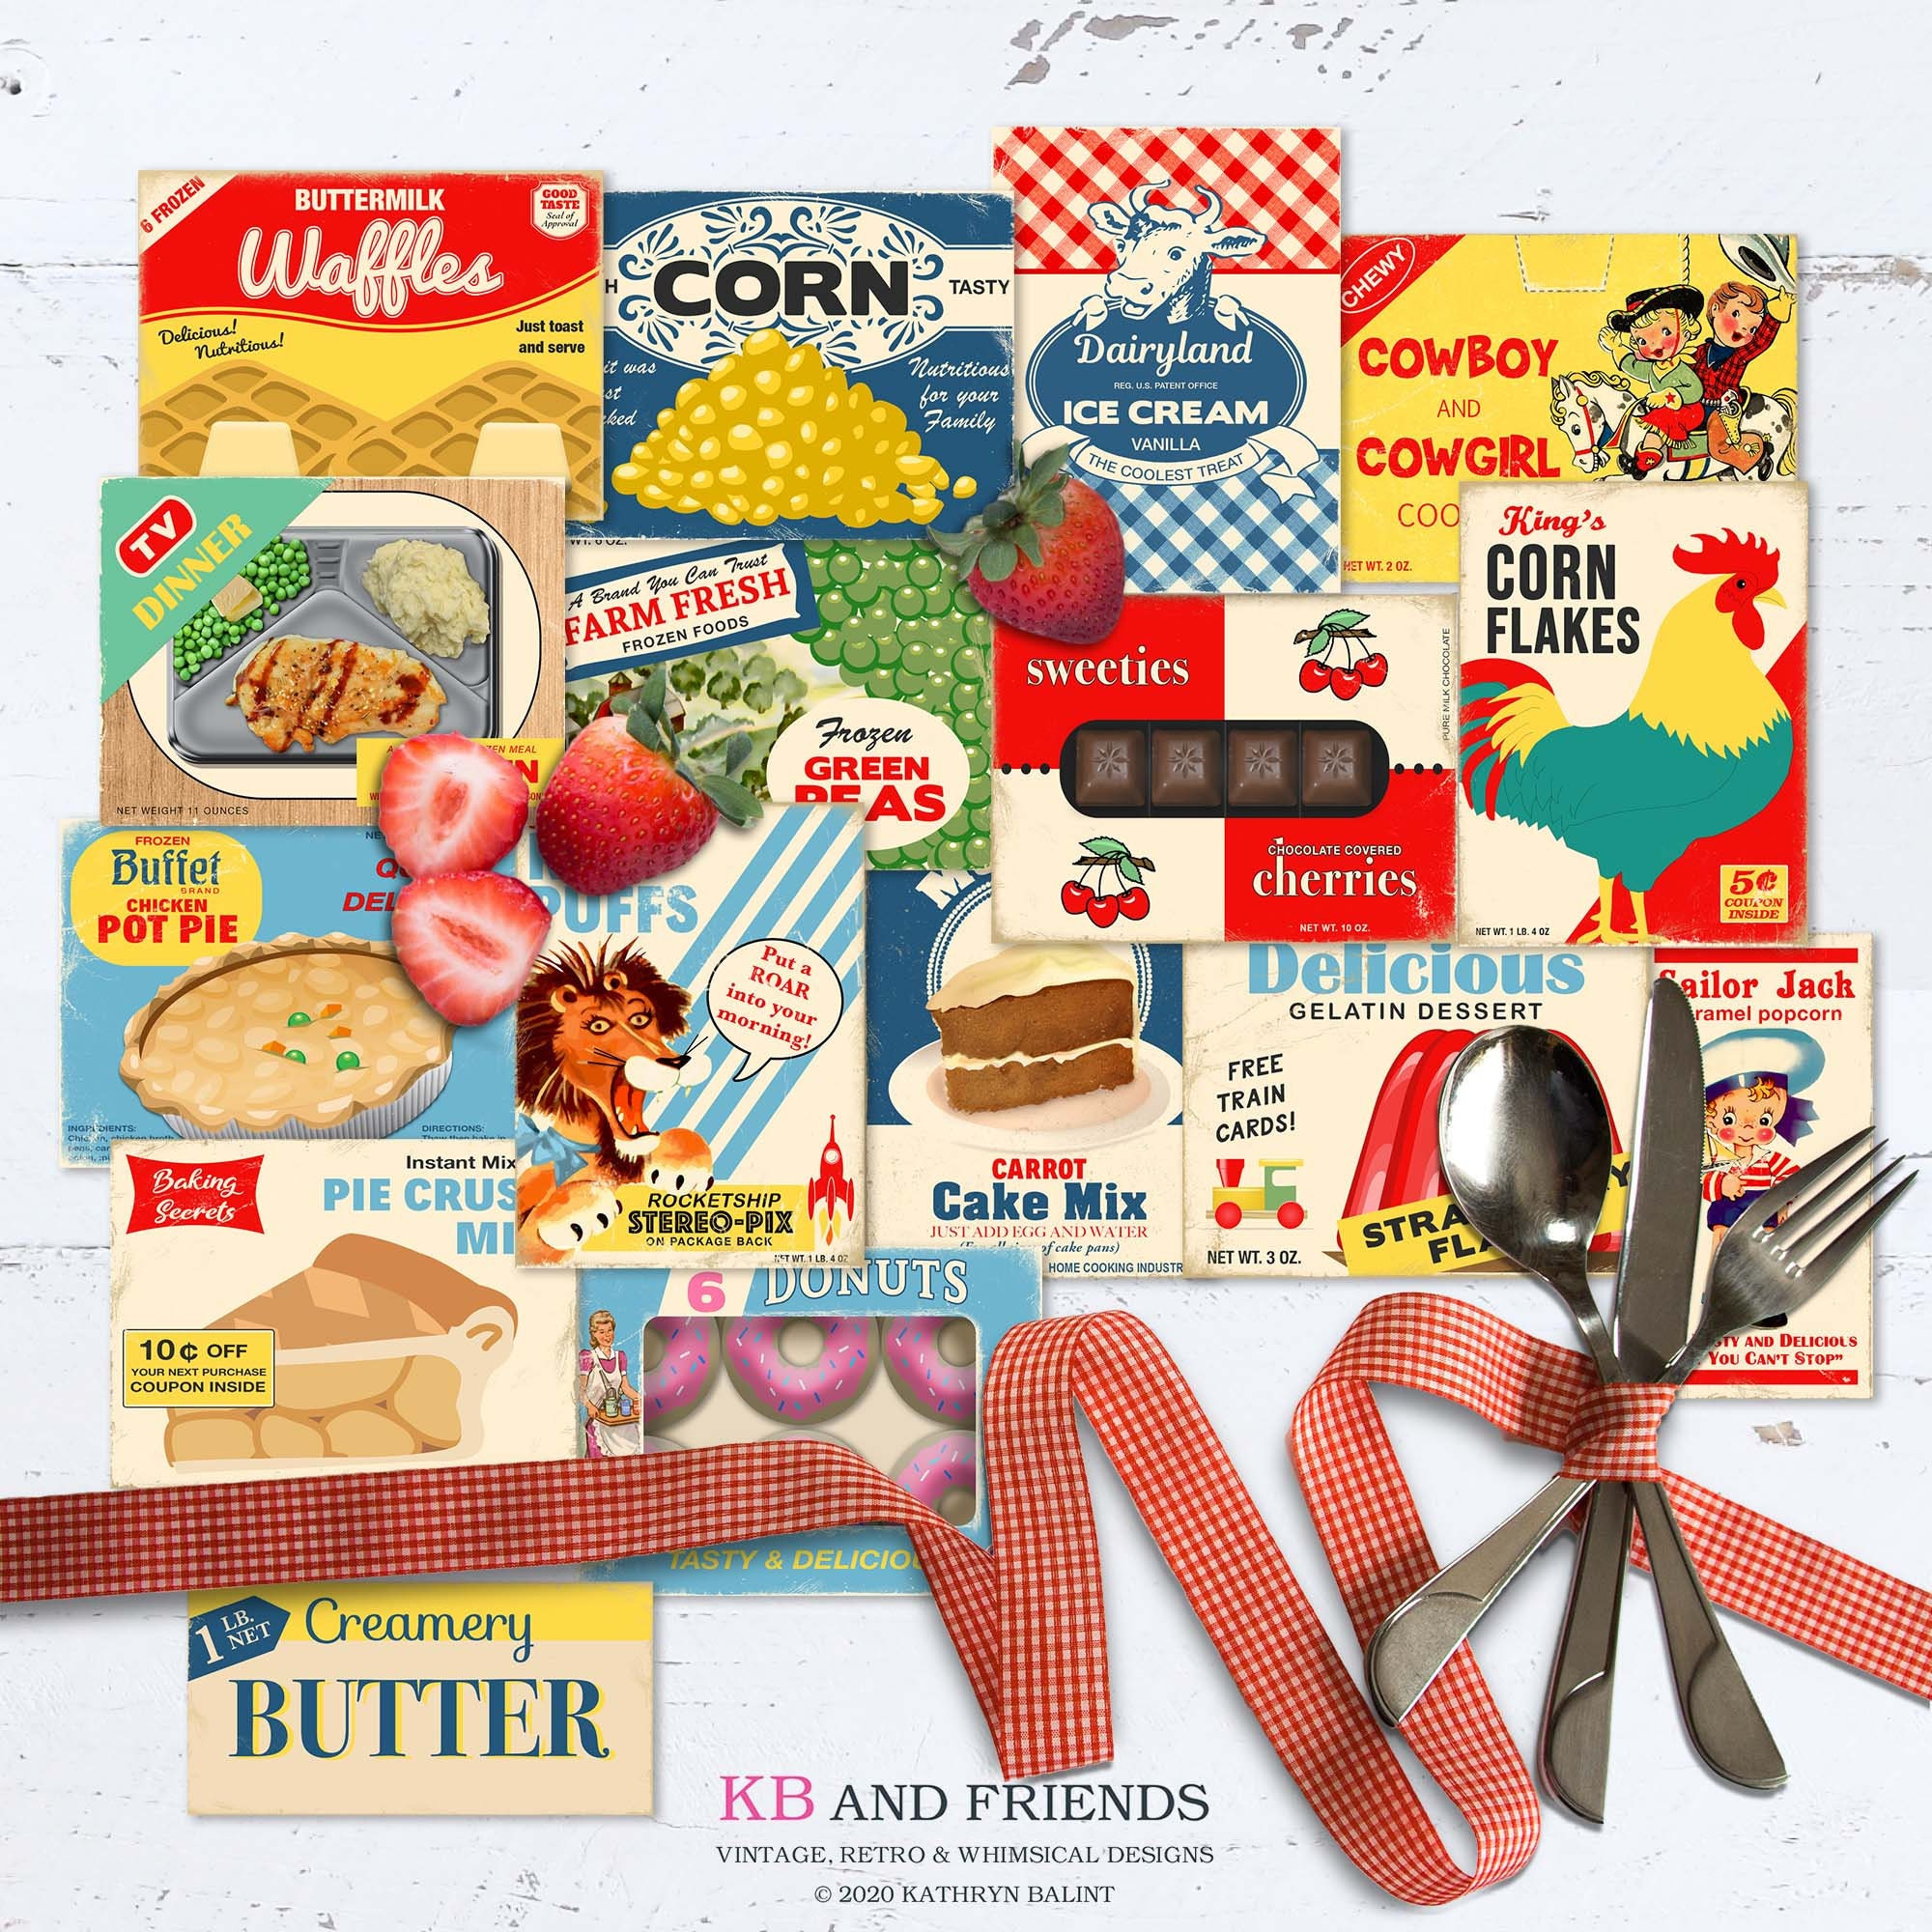 Printable Food Box Tops by KB and Friends